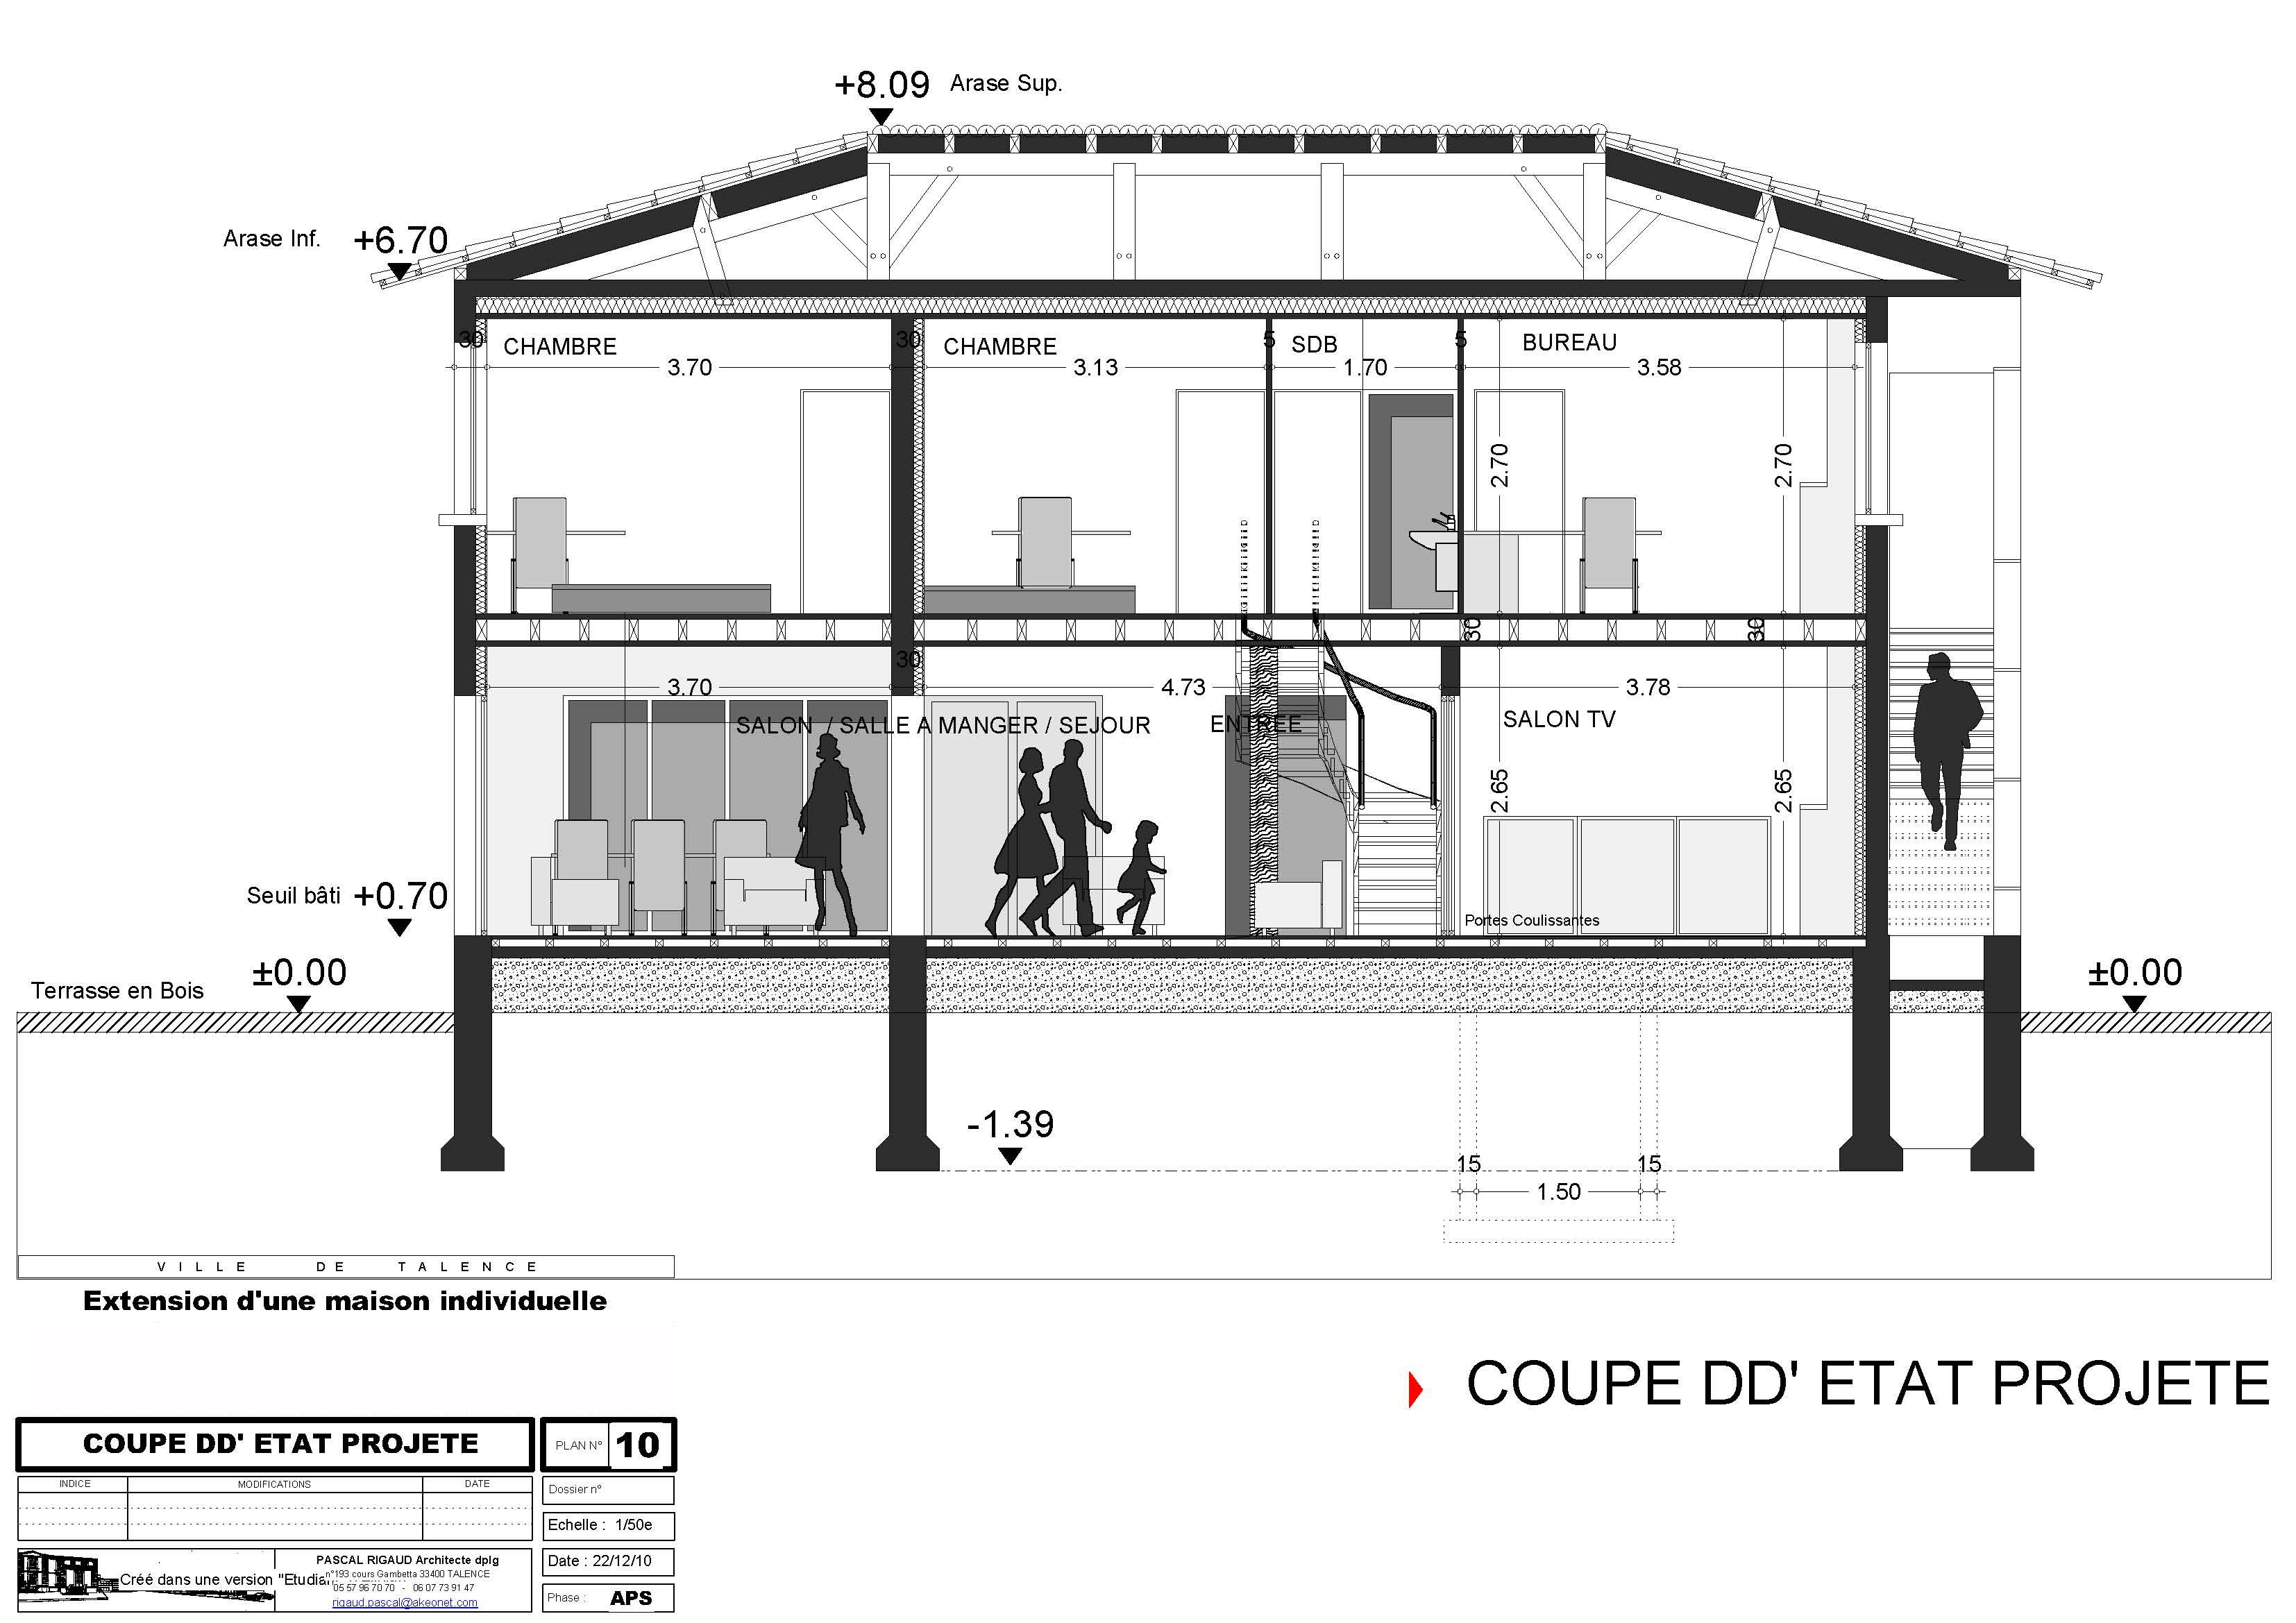 Finest Attachment Id With Plan Extension Maison 40m2